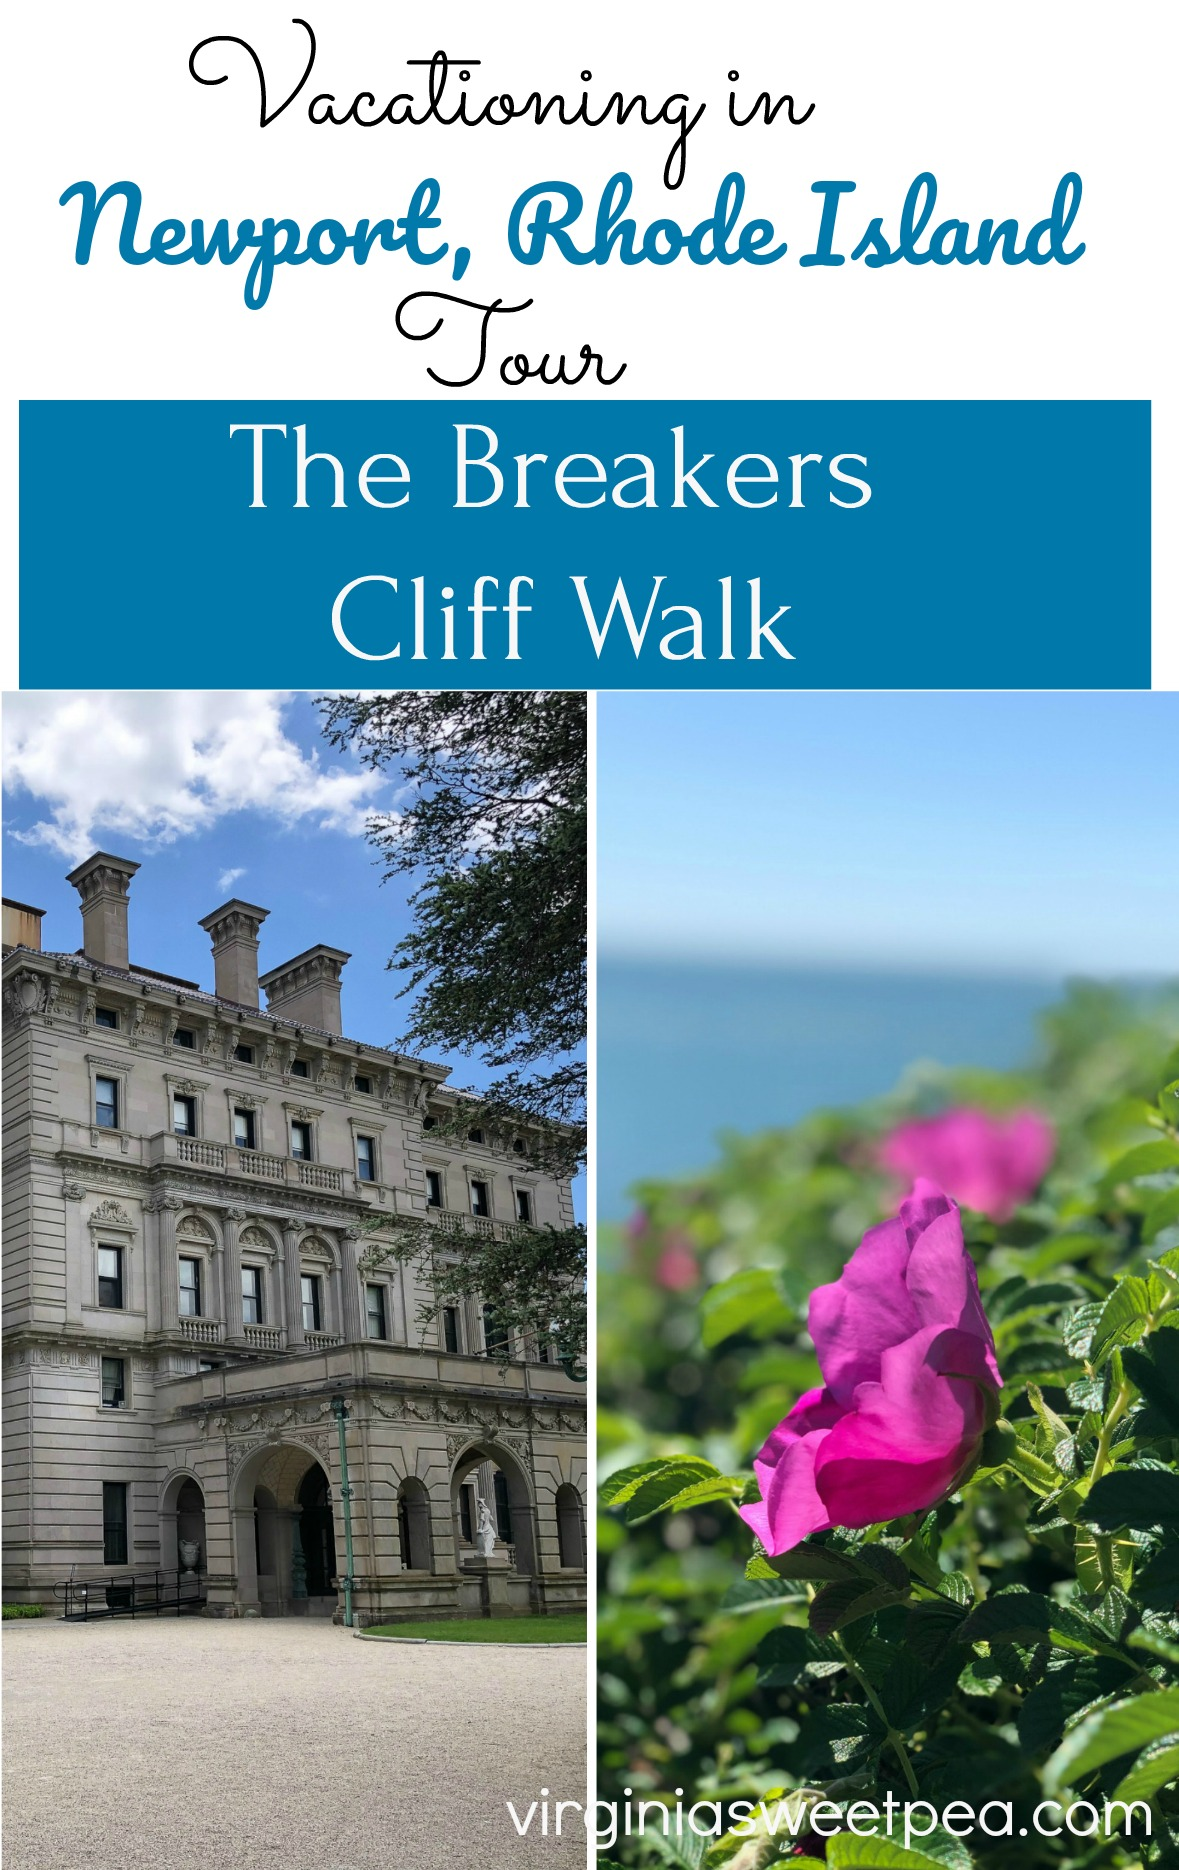 Vacationing in Newport, Rhode Island:  Take a tour of The Breakers and see scenery on the Cliff Walk, a 3.5 mile trail along Newport's coastline that meanders behind many of Newport's mansions.  #newportrhodeisland #newport #cliffwalk #thebreakers #newportmansions  via @spaula